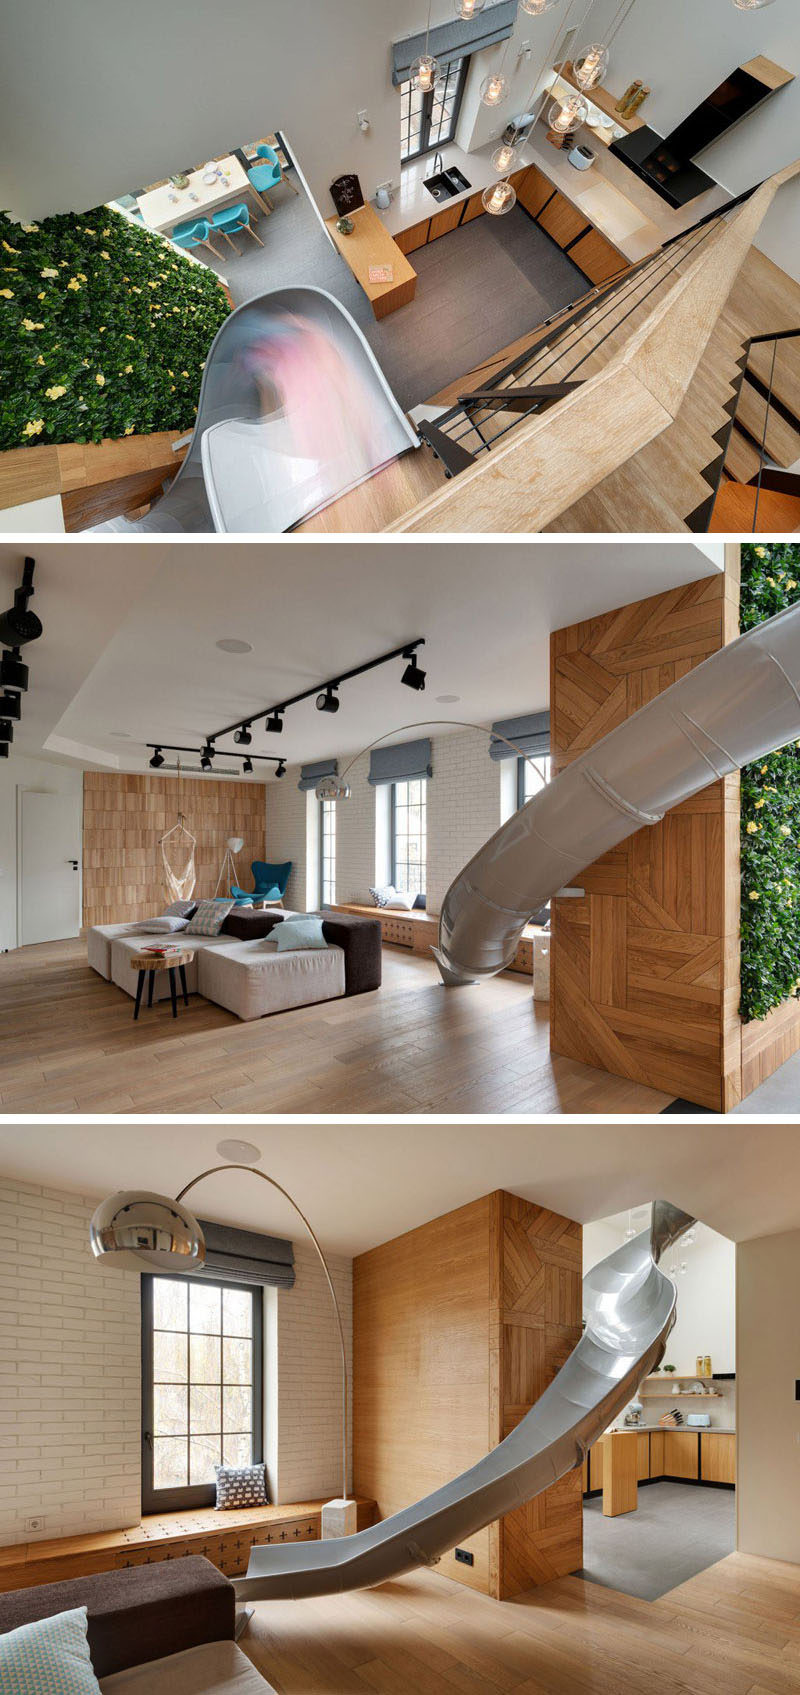 The metal slide in this modern apartment takes you down from the top floor right into the living room, and passes through the kitchen on the way there.